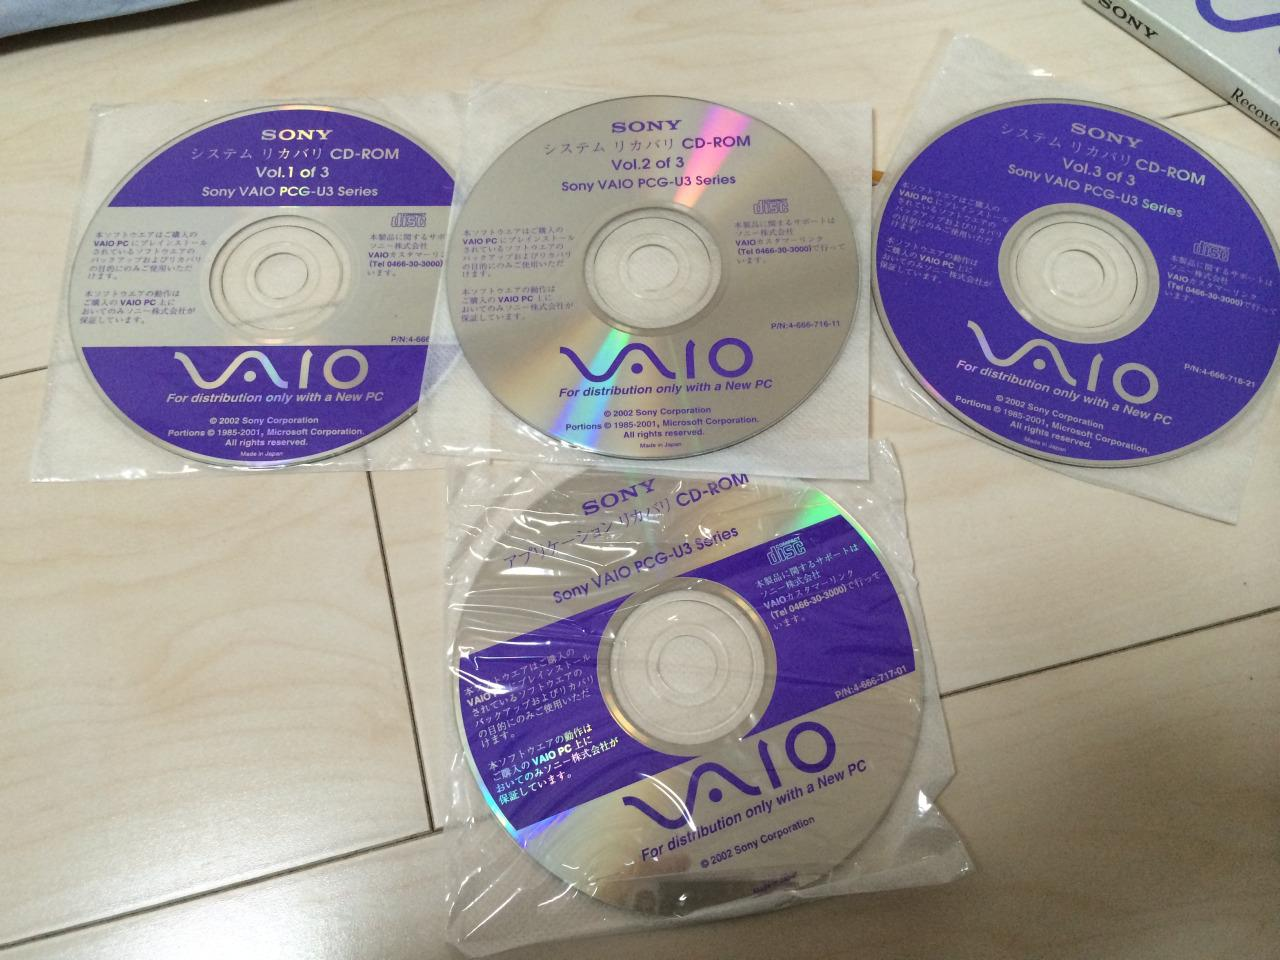 VAIO Recovery Disk Guide for Windows XP, Vista, 7, 8